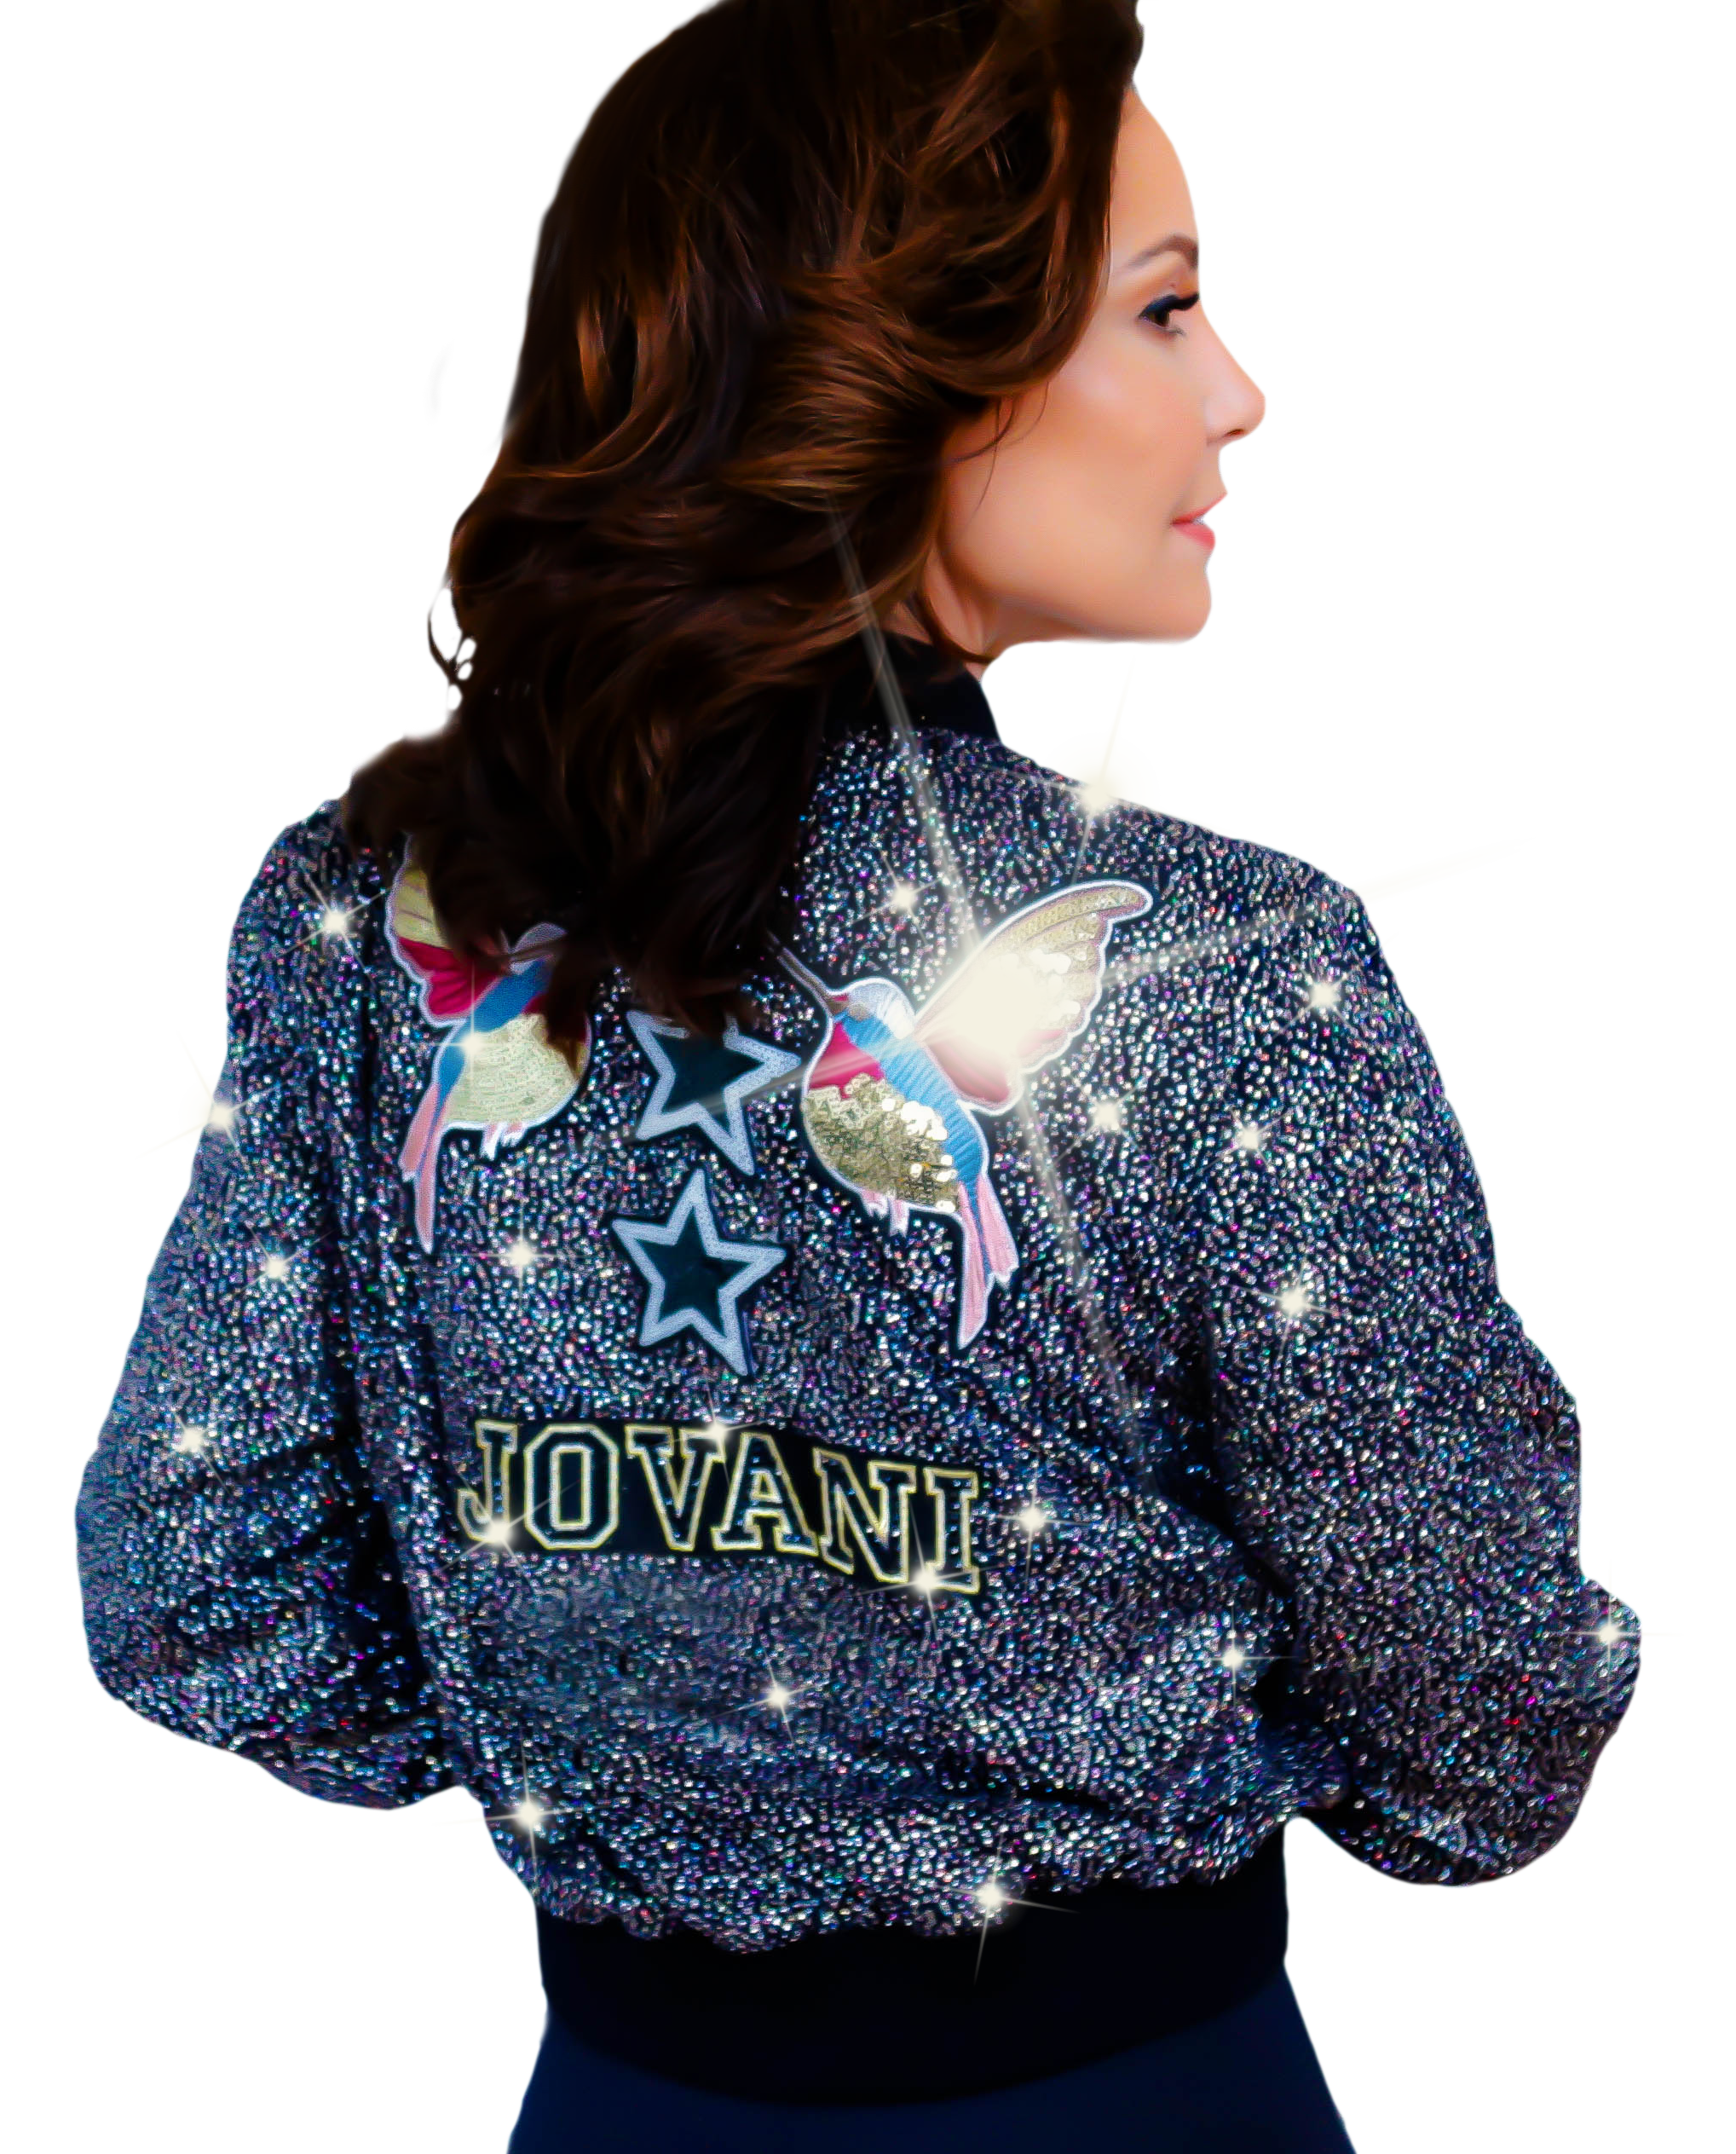 COUNTESSLUANN-JOVANI-FEELINJOVANI-02990-BACKcropped.png